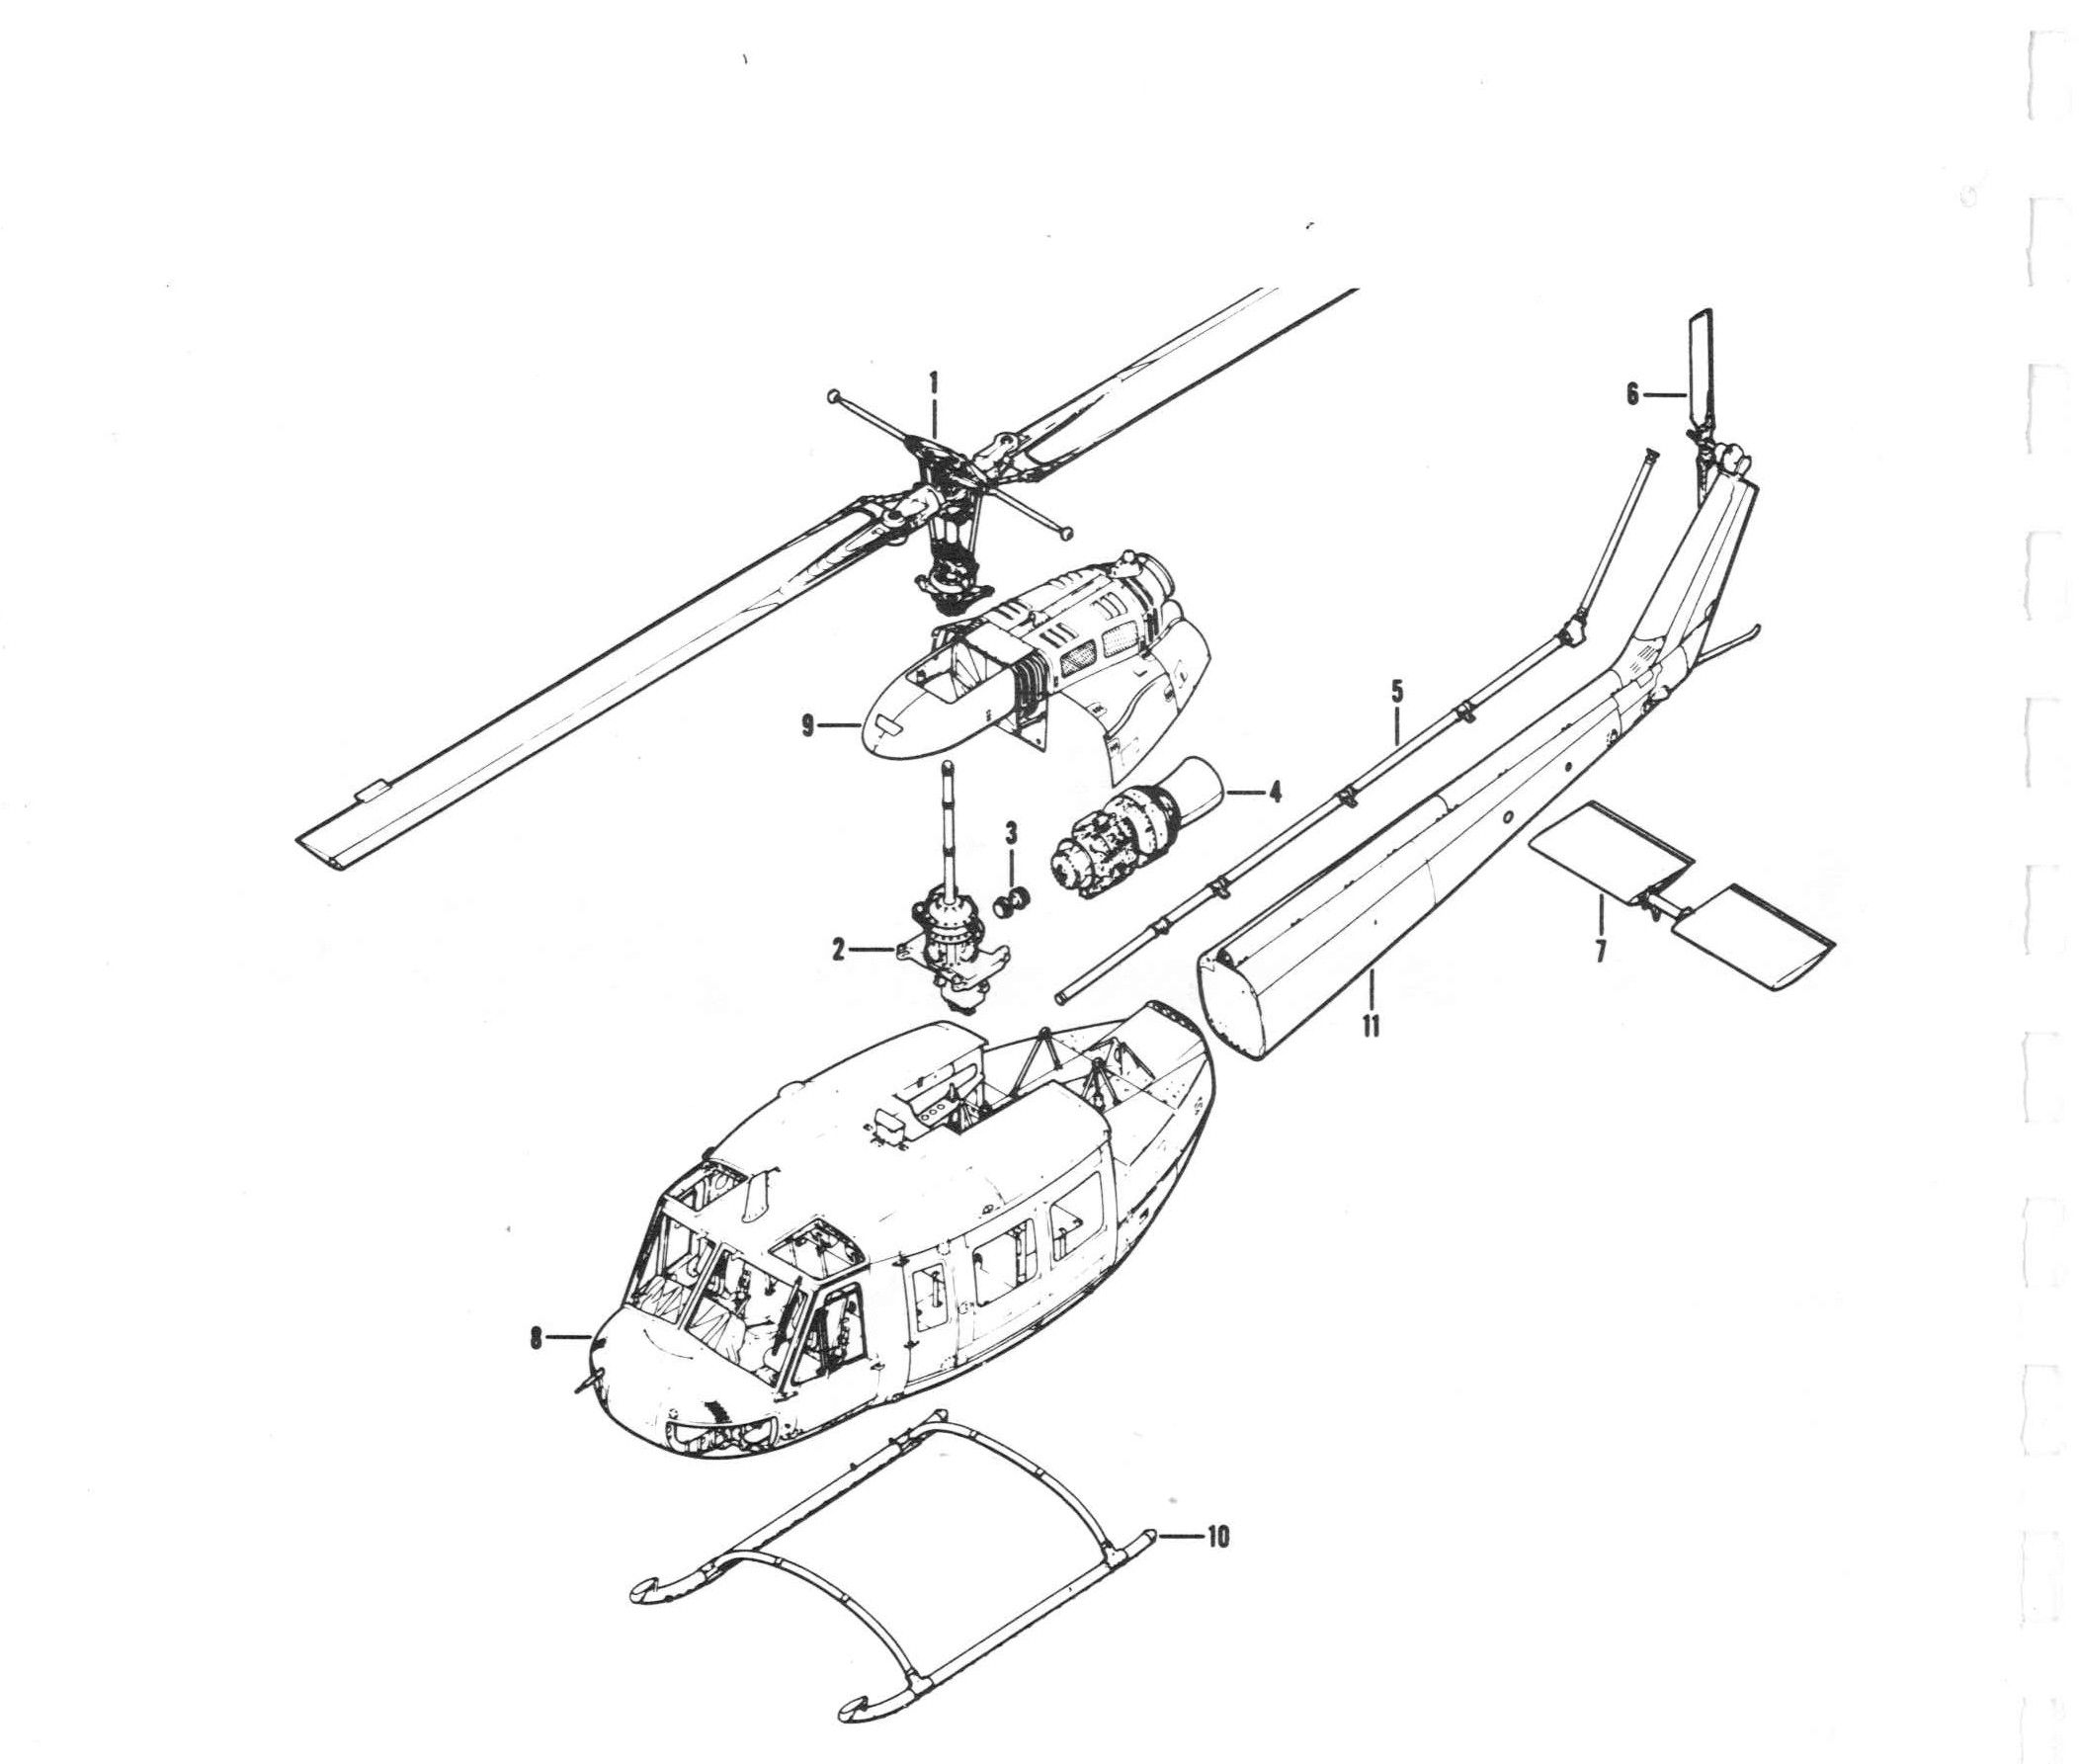 exploded view of helicopter 2